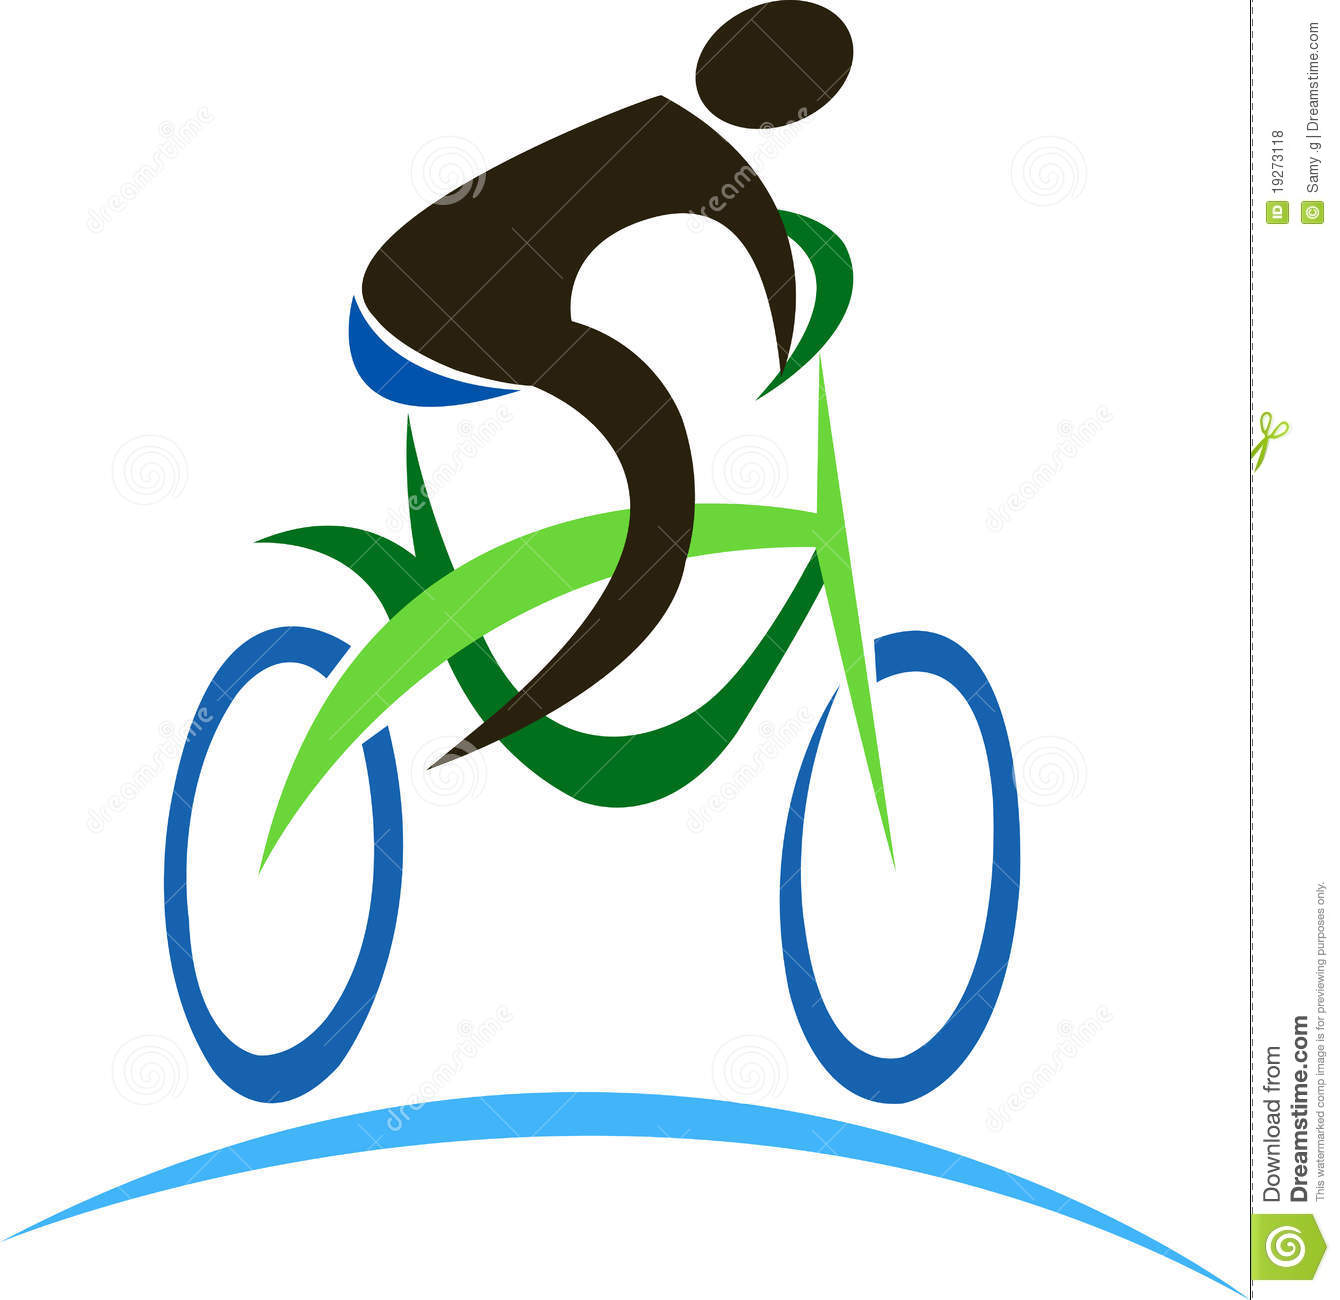 Illustration art of a cycle logo with isolated background.